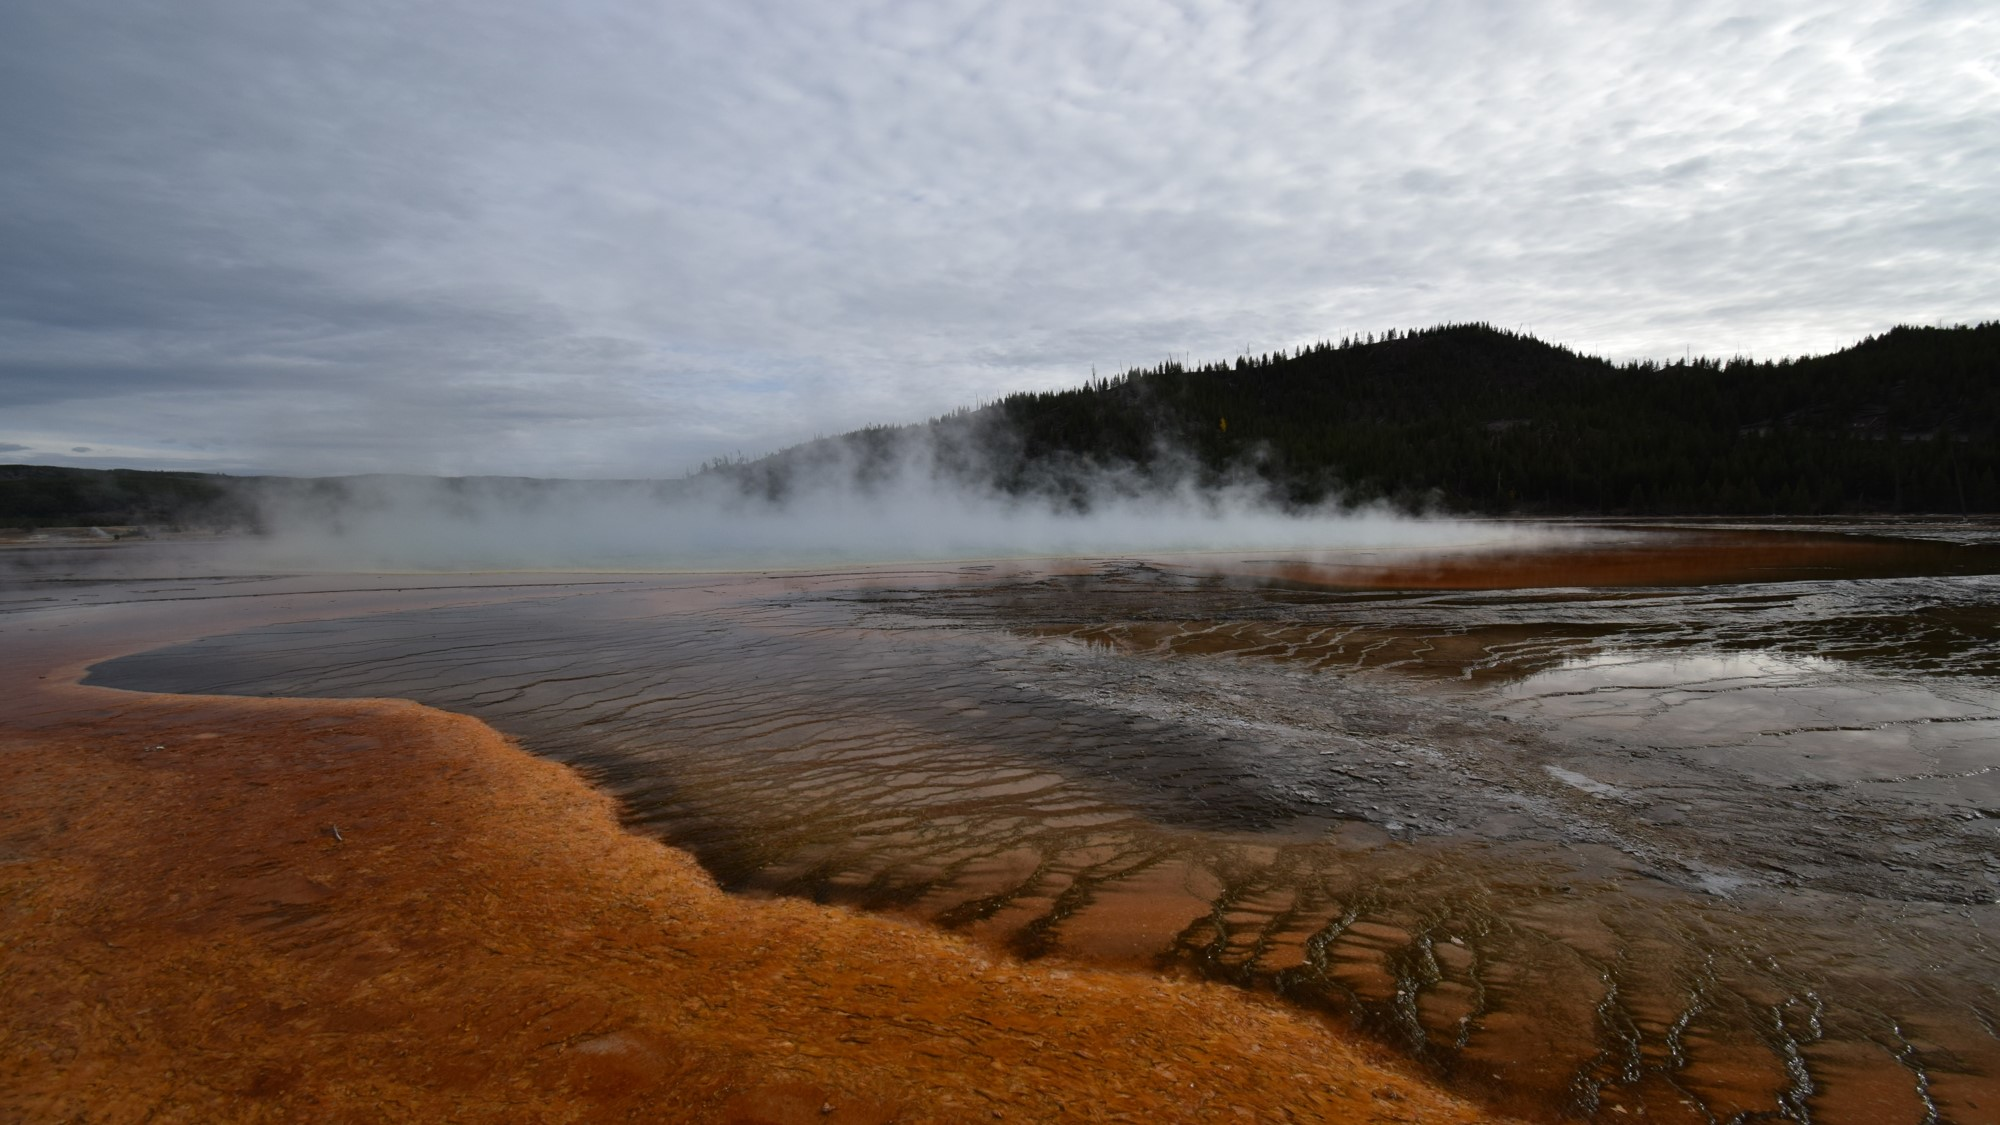 Geyser Pool showing futuristic landscape